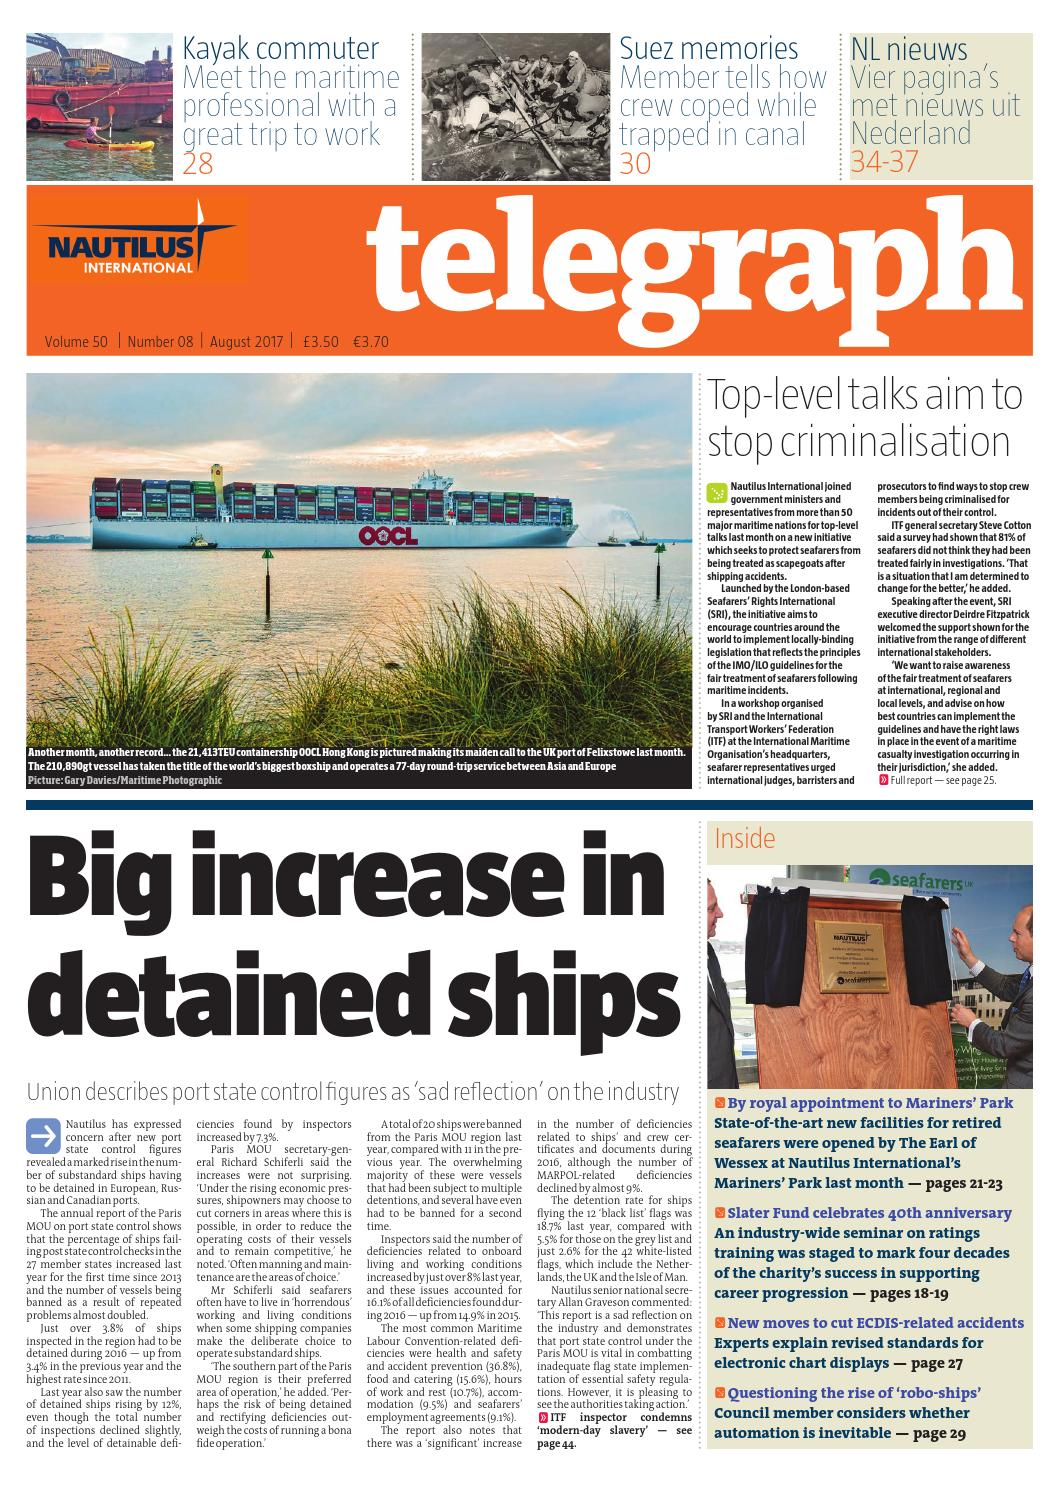 Nautilus Telegraph August 2017 by Redactive Media Group - issuu